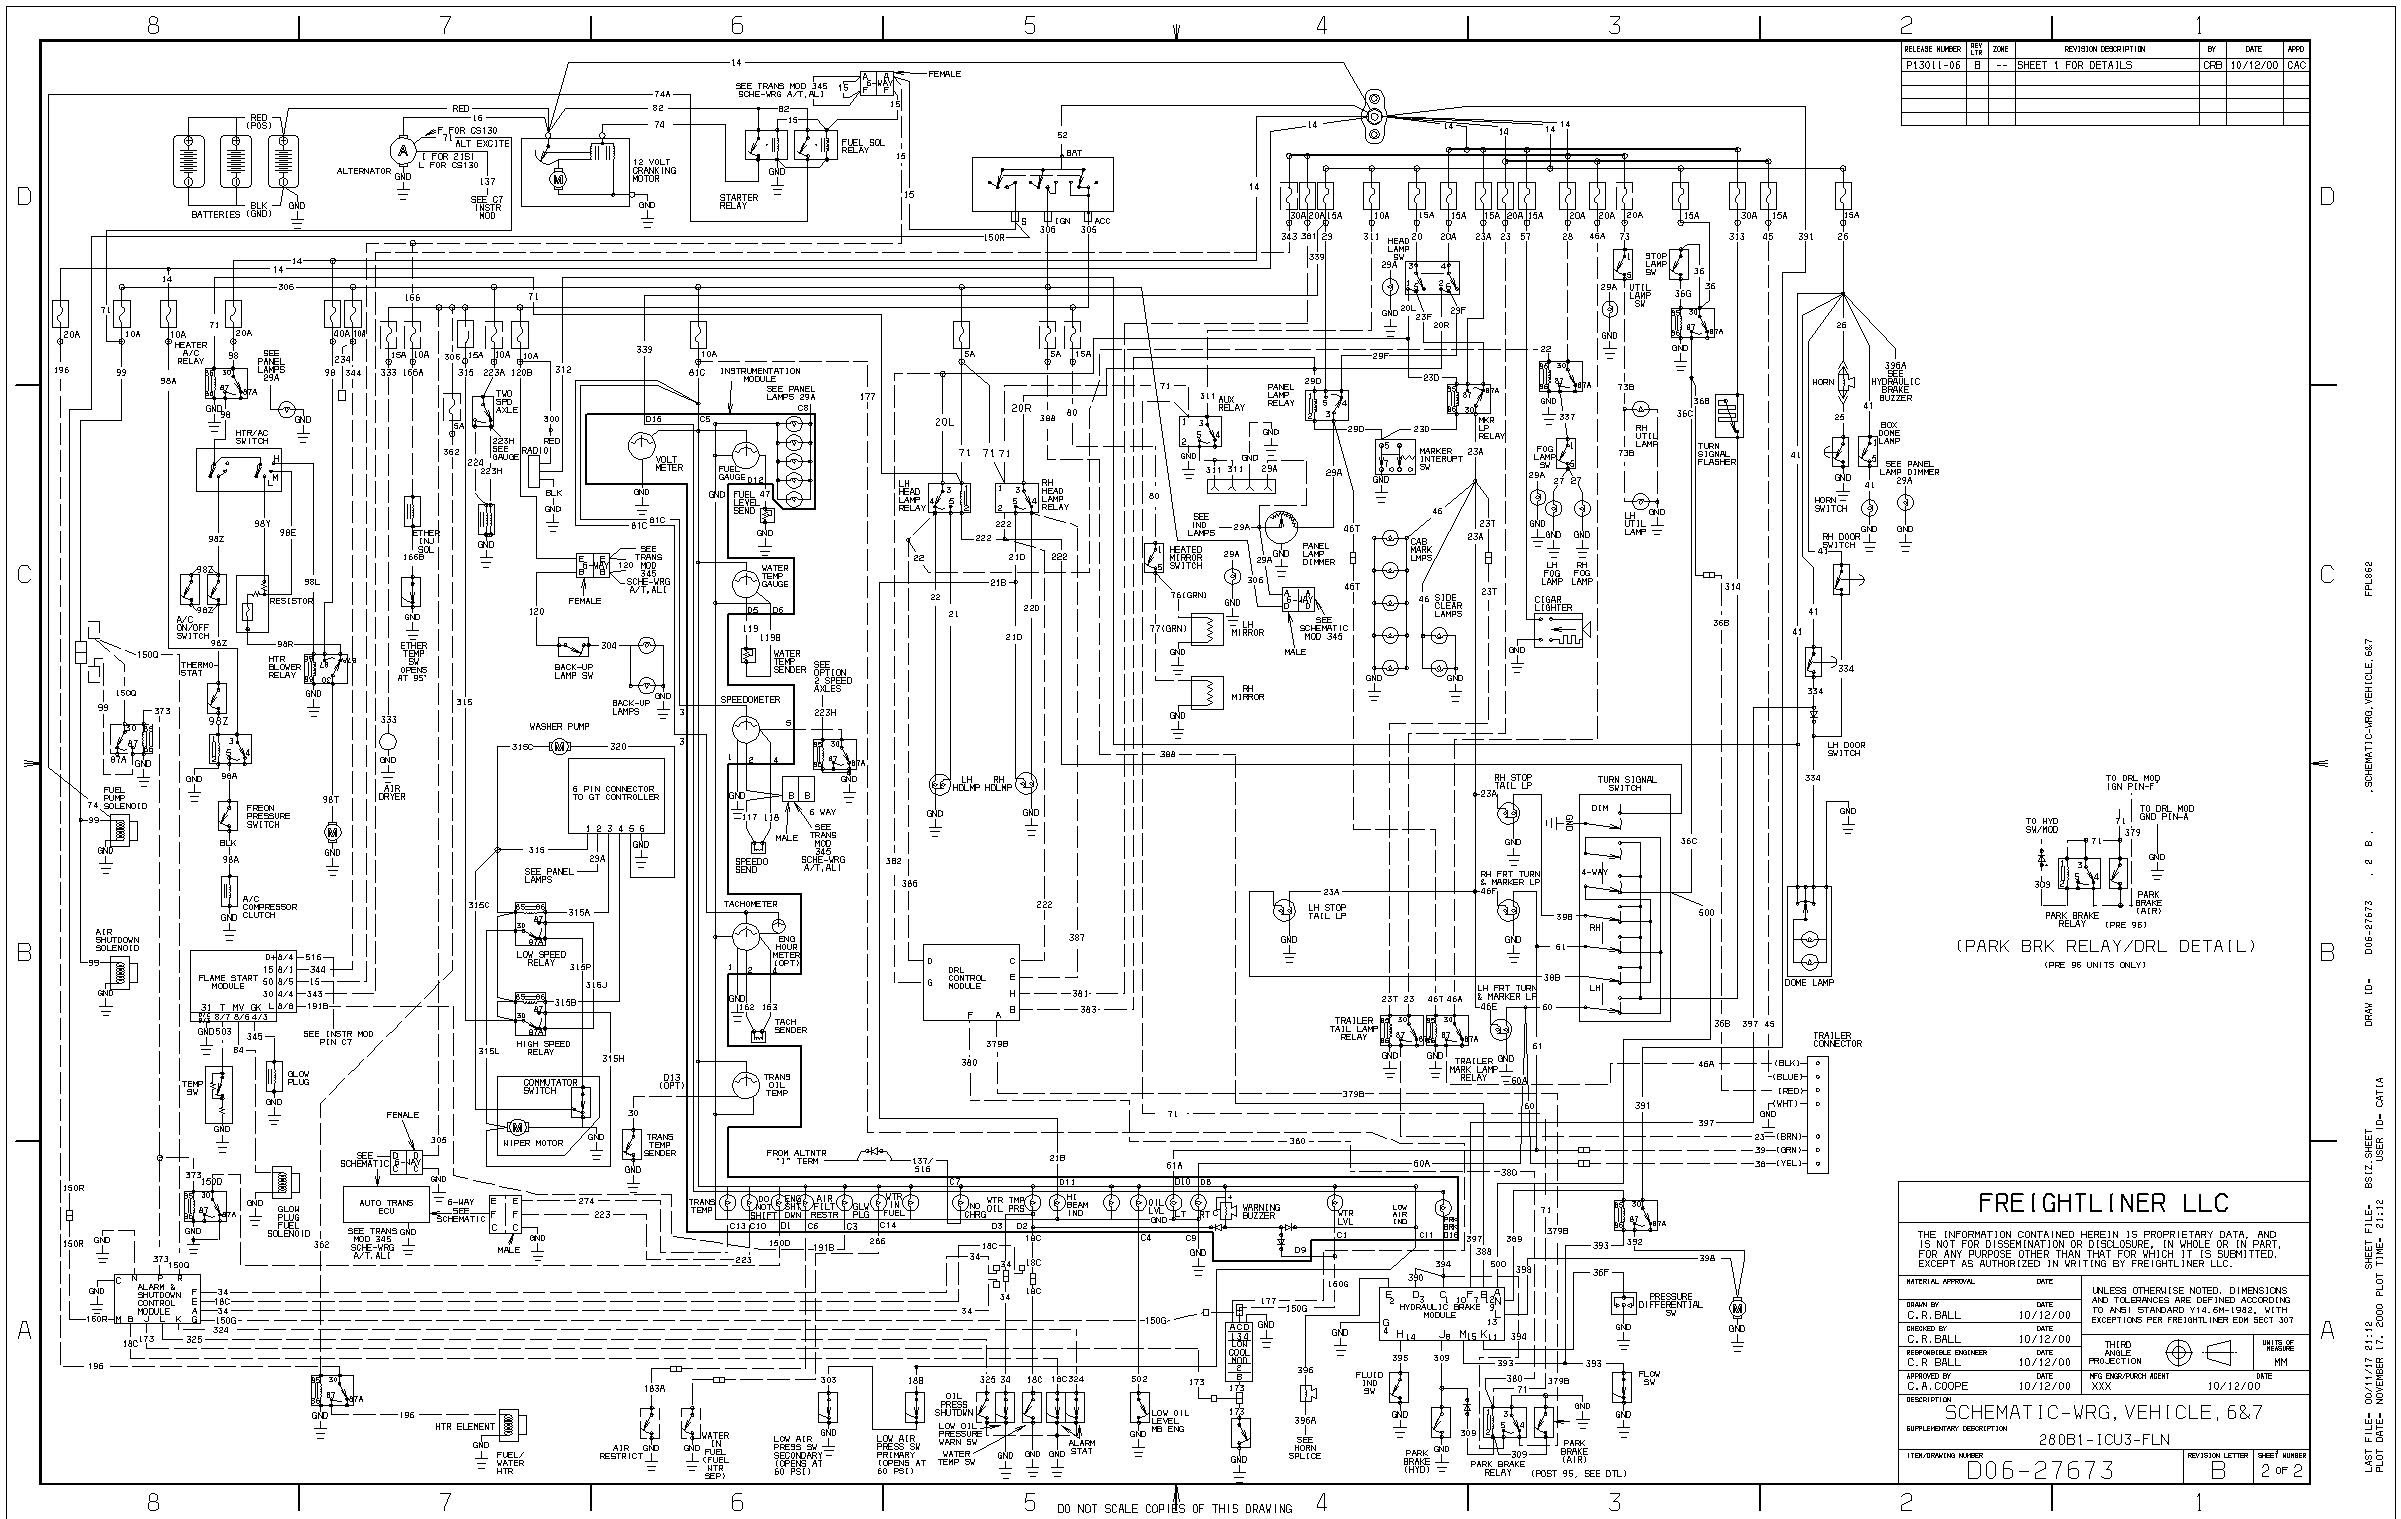 I have 2003 fl70 Freightliner and I need a wiring diagram ...